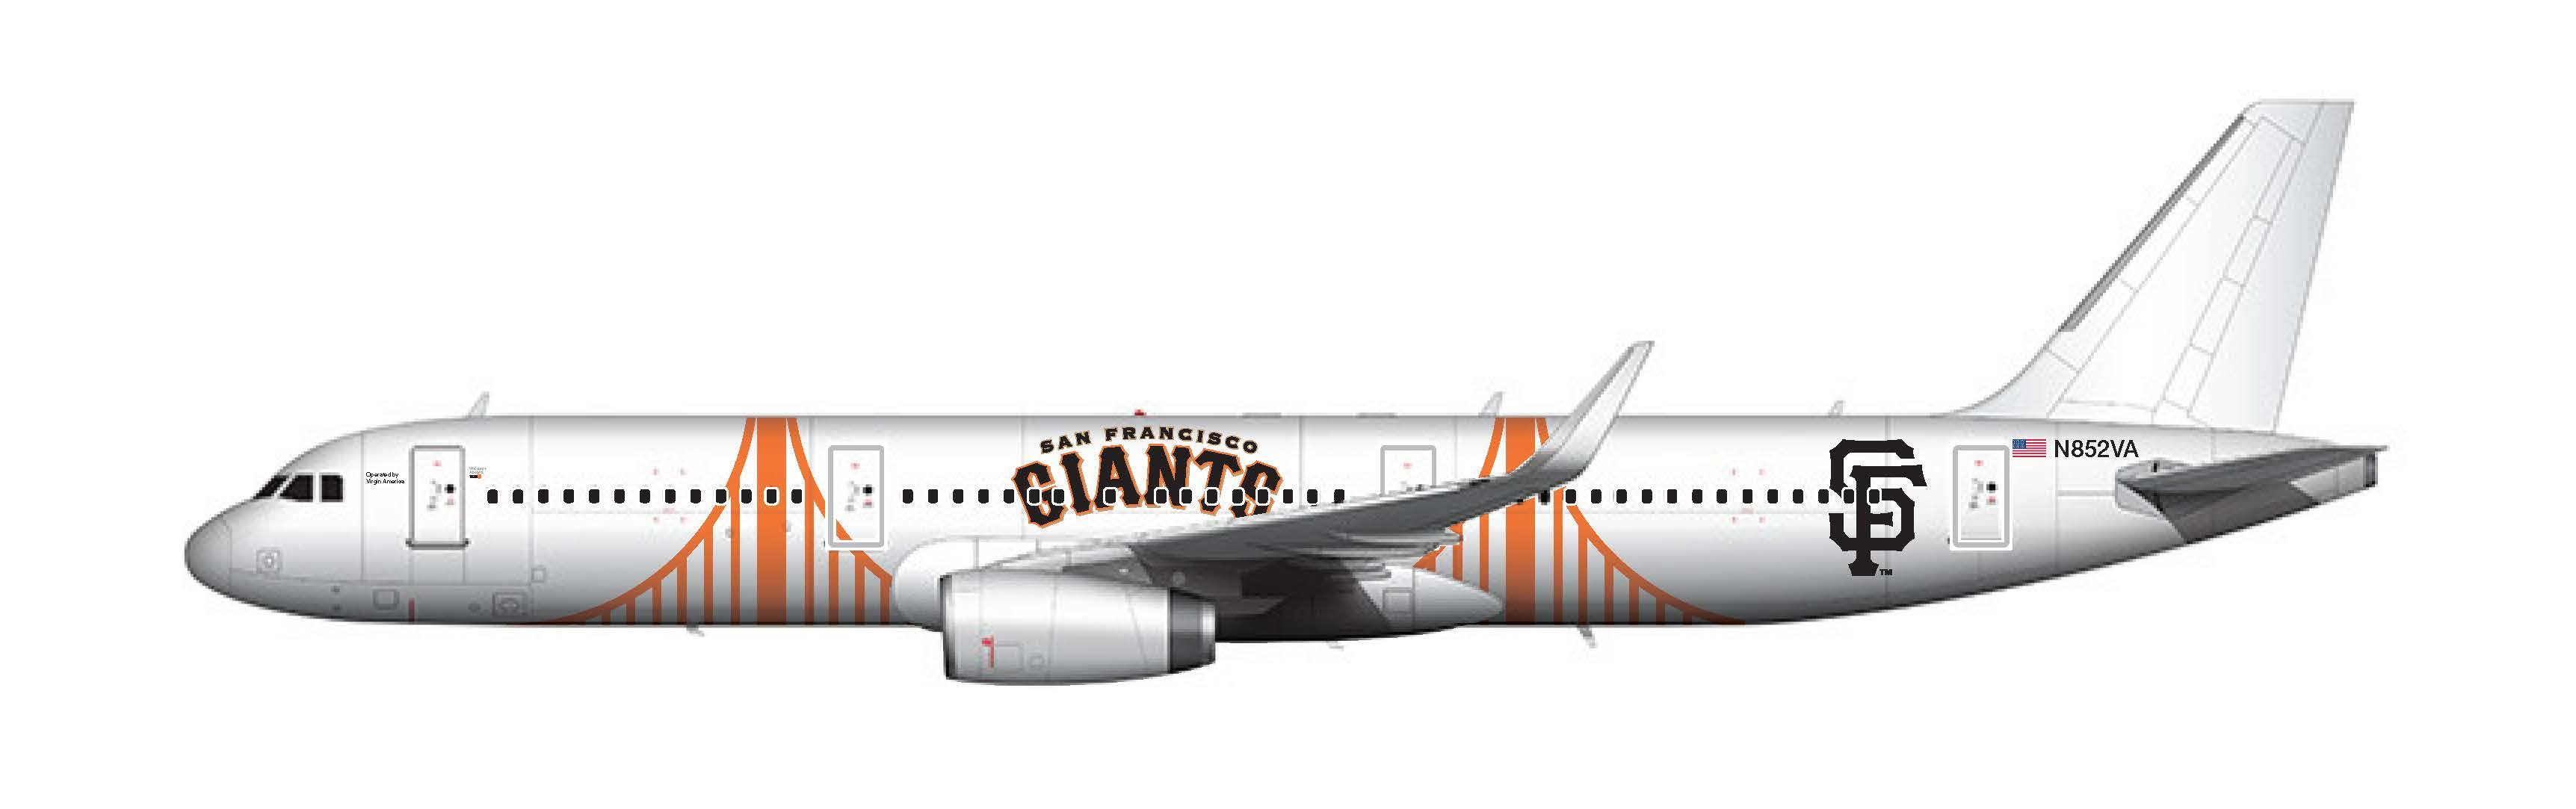 [EXPIRED] Free Two-For-One Vouchers on Alaska Airlines to the First 40k Fans at SF Giants Game on 9/17